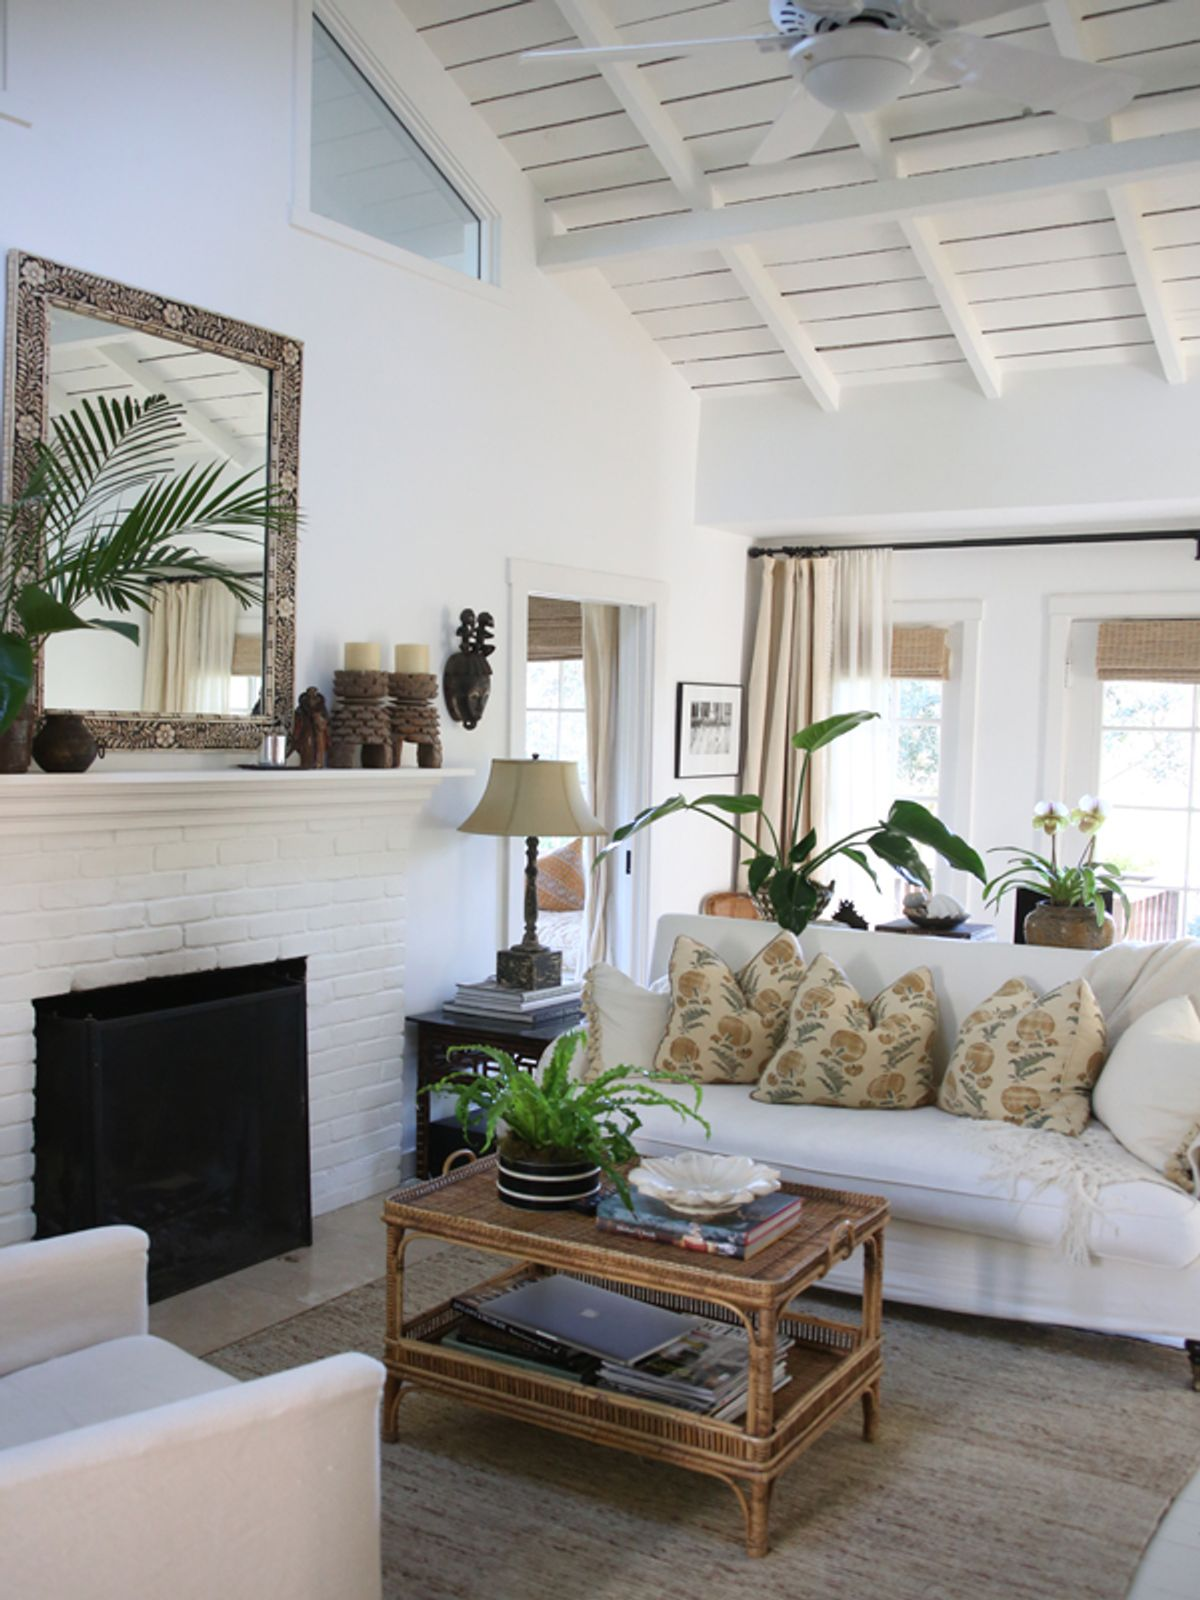 Adorable California Cottage, Santa Barbara CA Single Family Home - Santa Barbara Real Estate